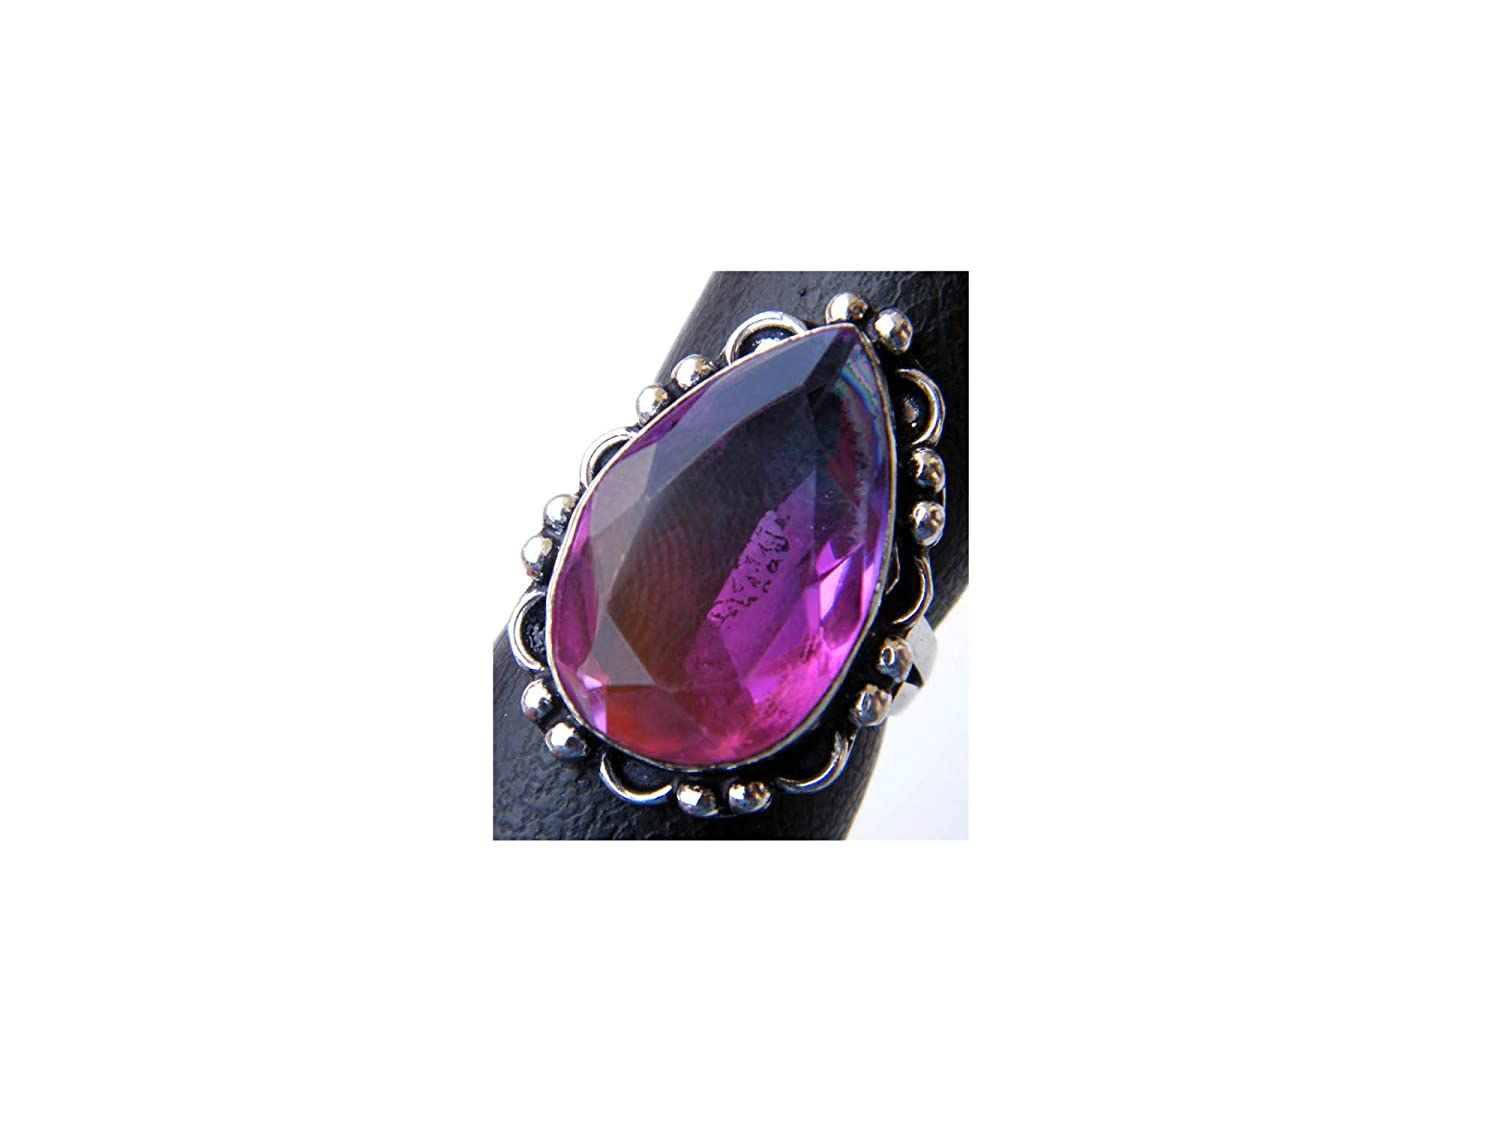 Silver Plated Ring Size- 9.25 USA Handmade Ring Women Jewelry, Thebestjewellery Multi Tourmaline Quartz Ring BRS-5221